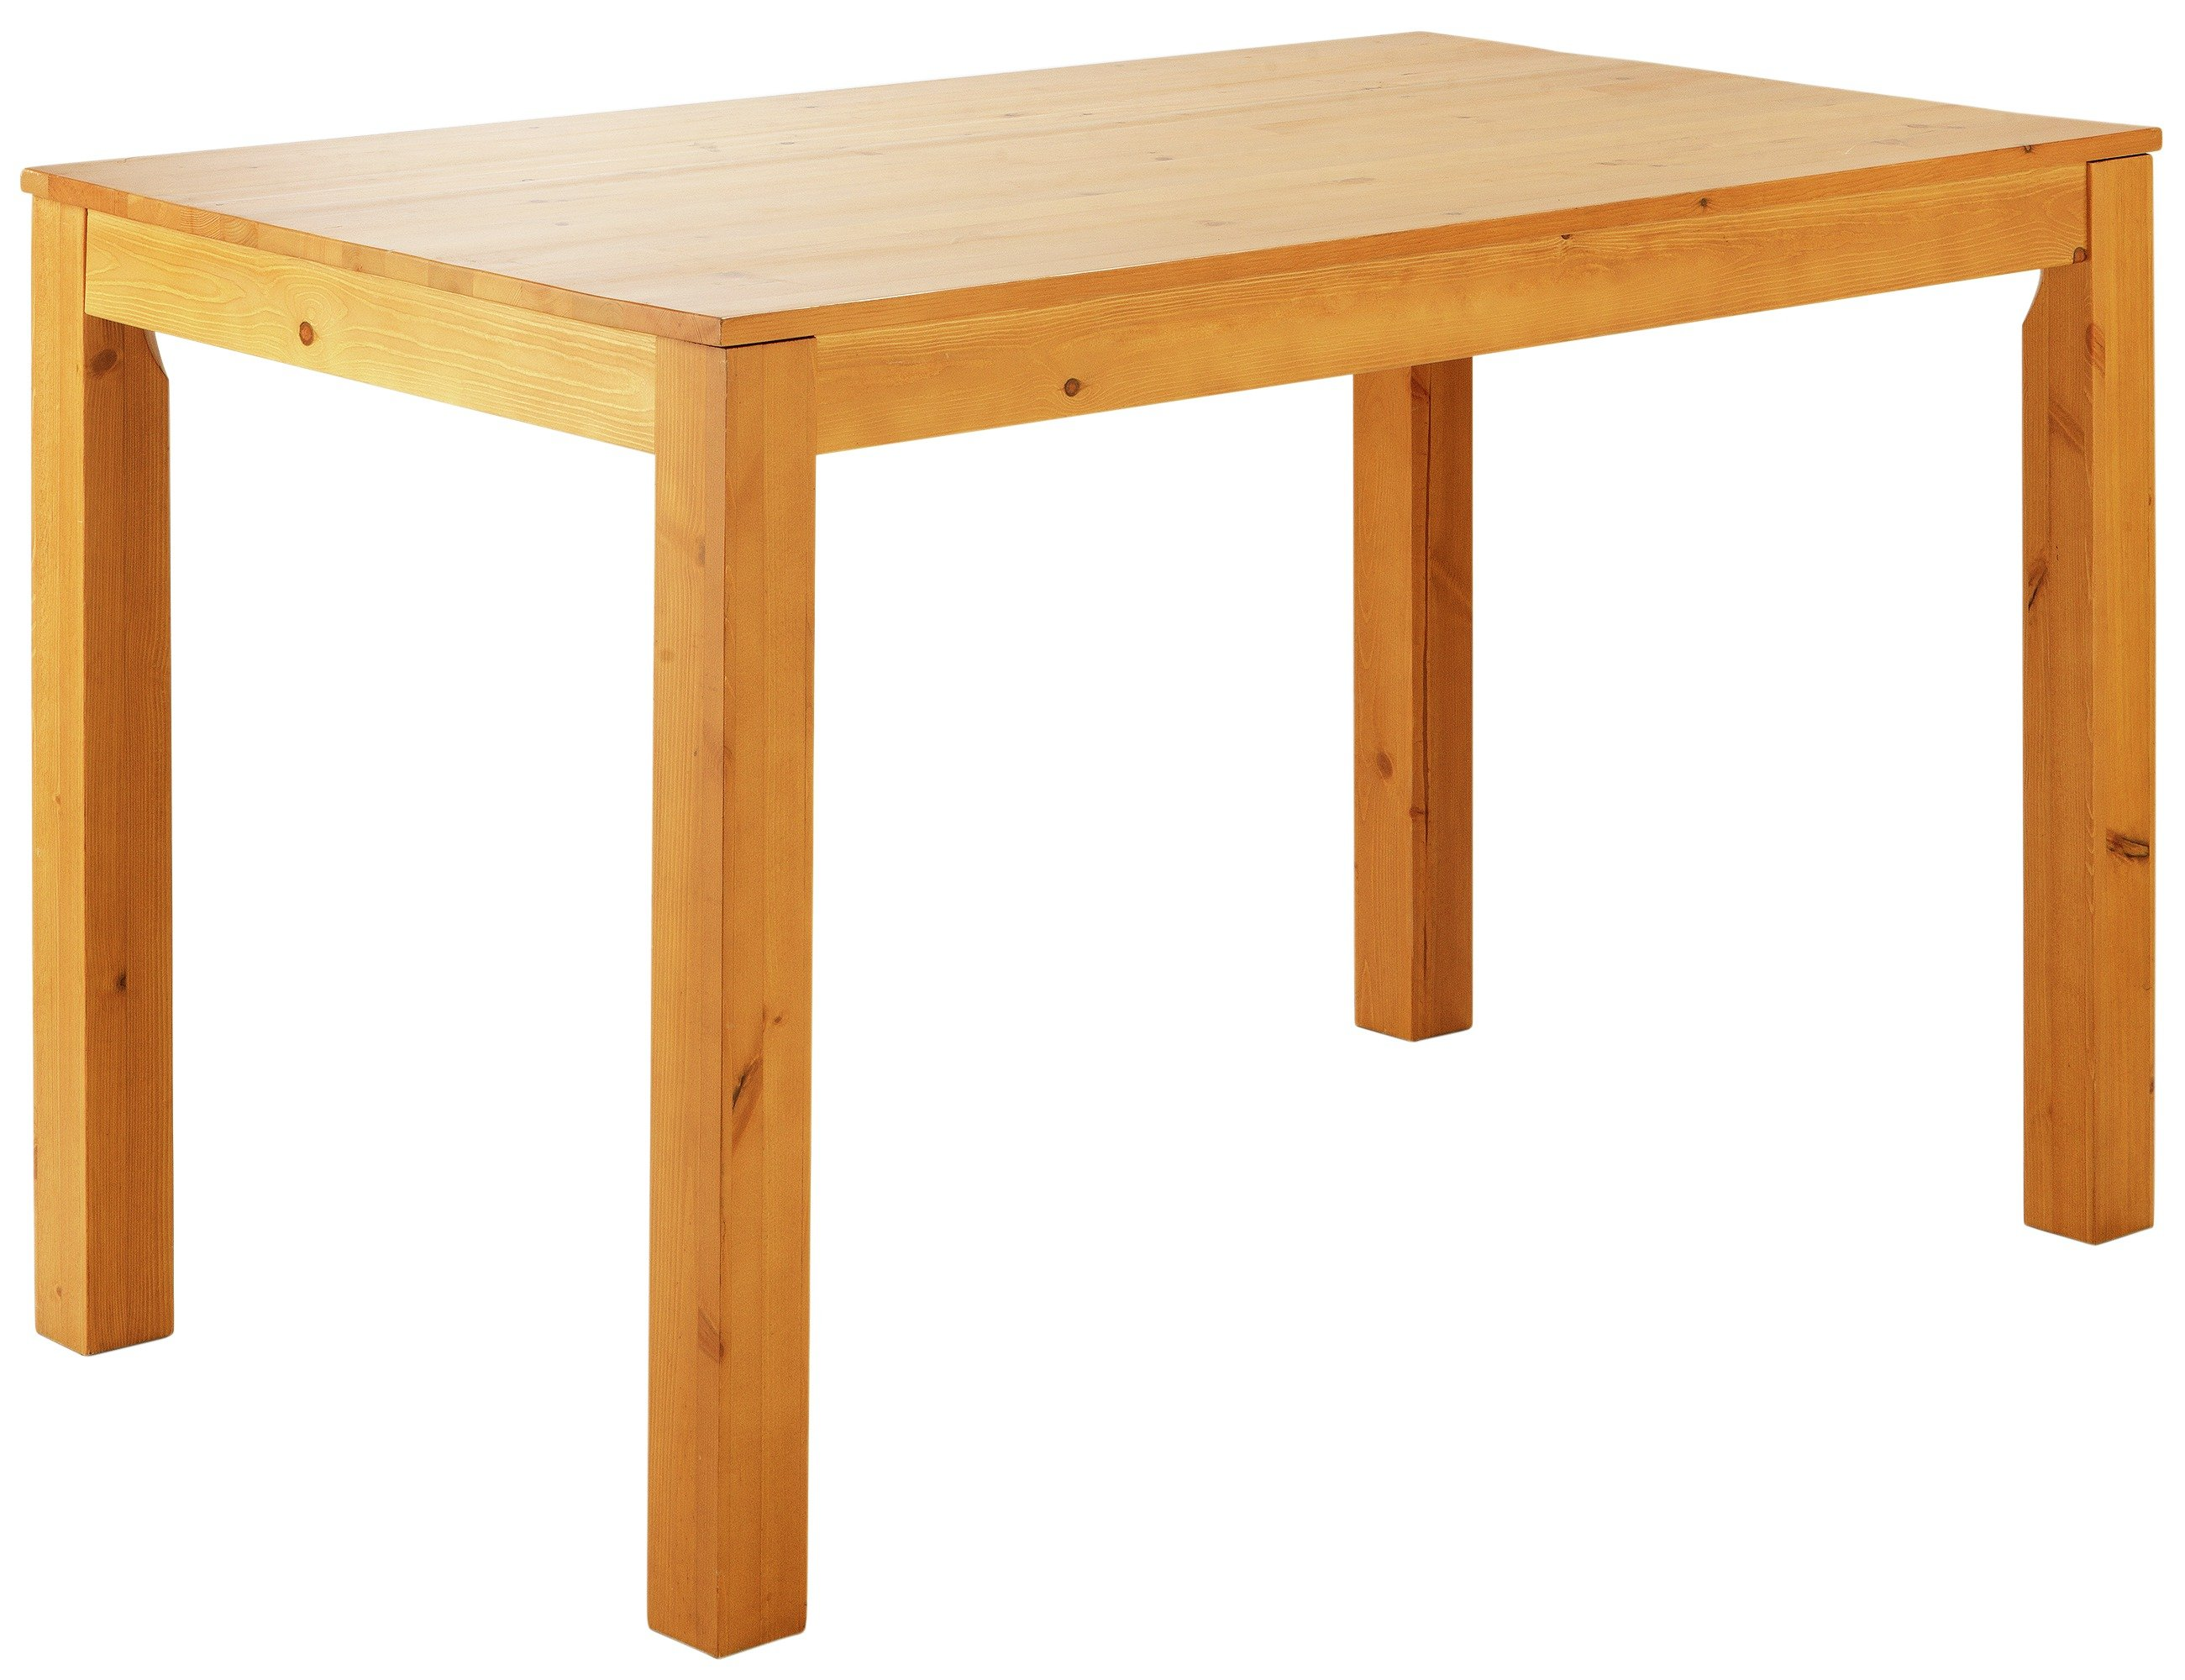 Image result for wood table